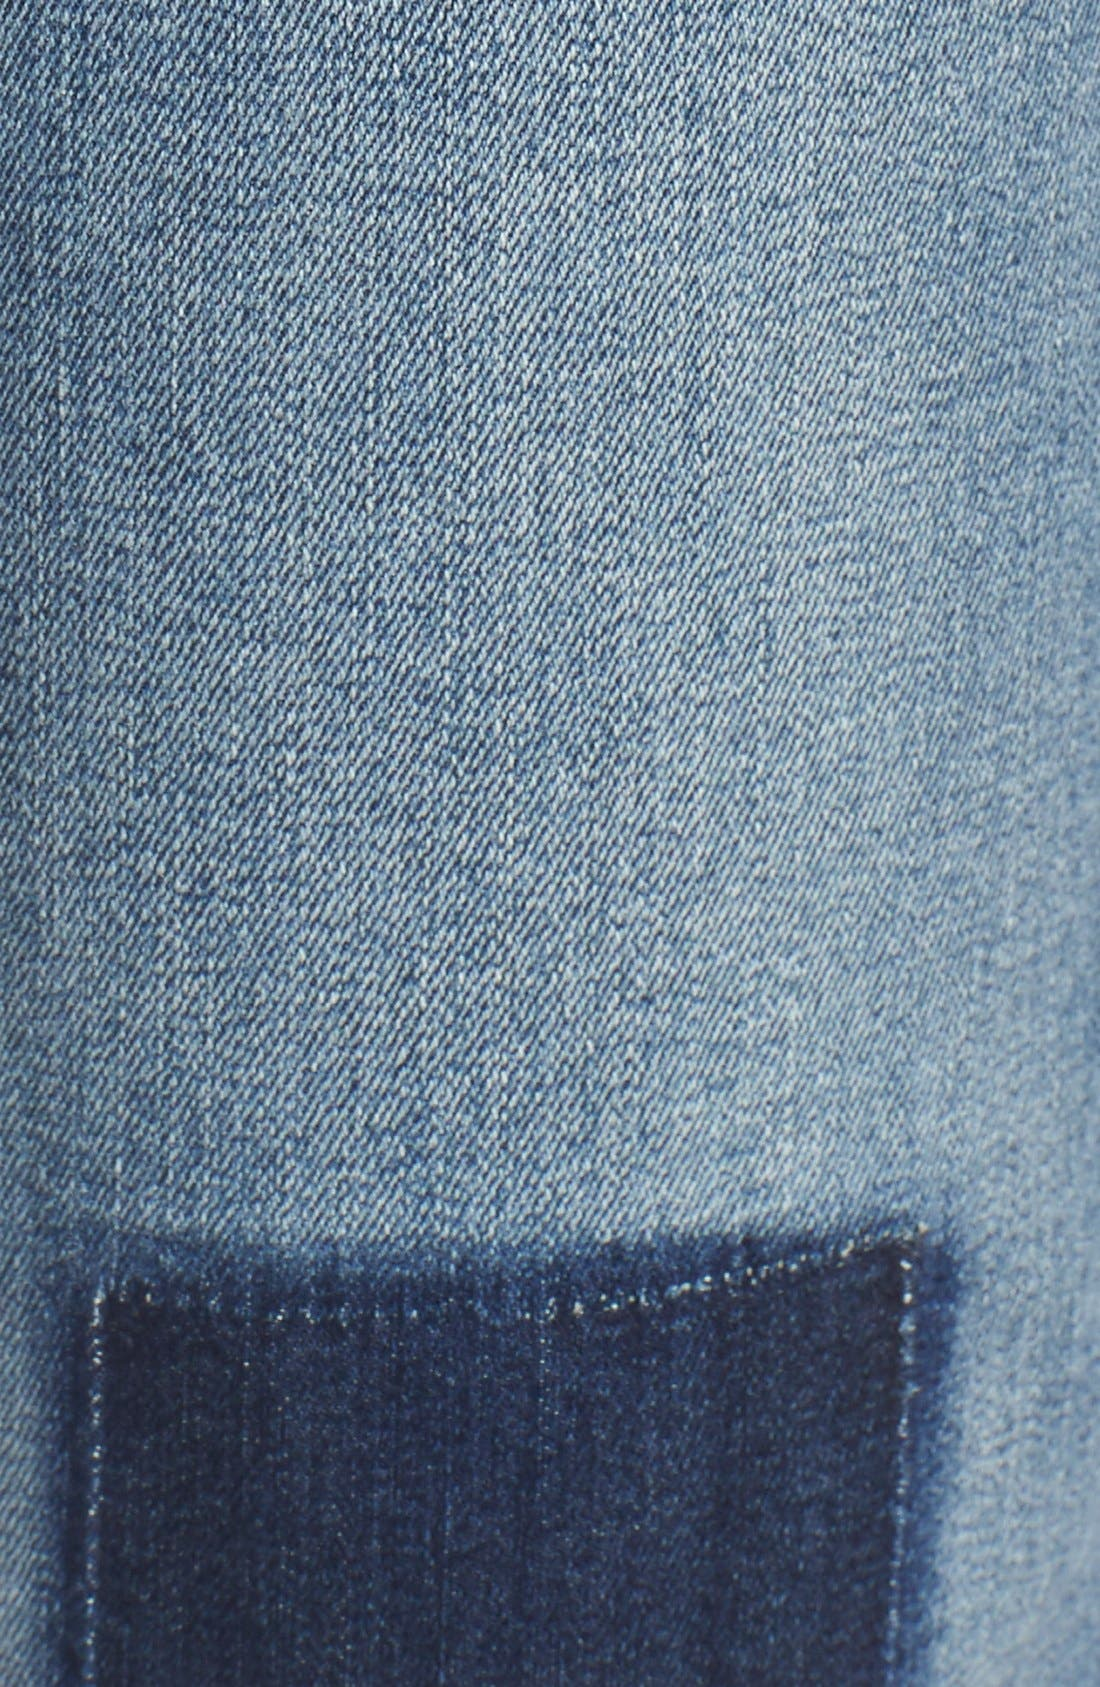 'Sylvia' Patch Detail Stretch Relaxed Boyfriend Jeans,                             Alternate thumbnail 5, color,                             423